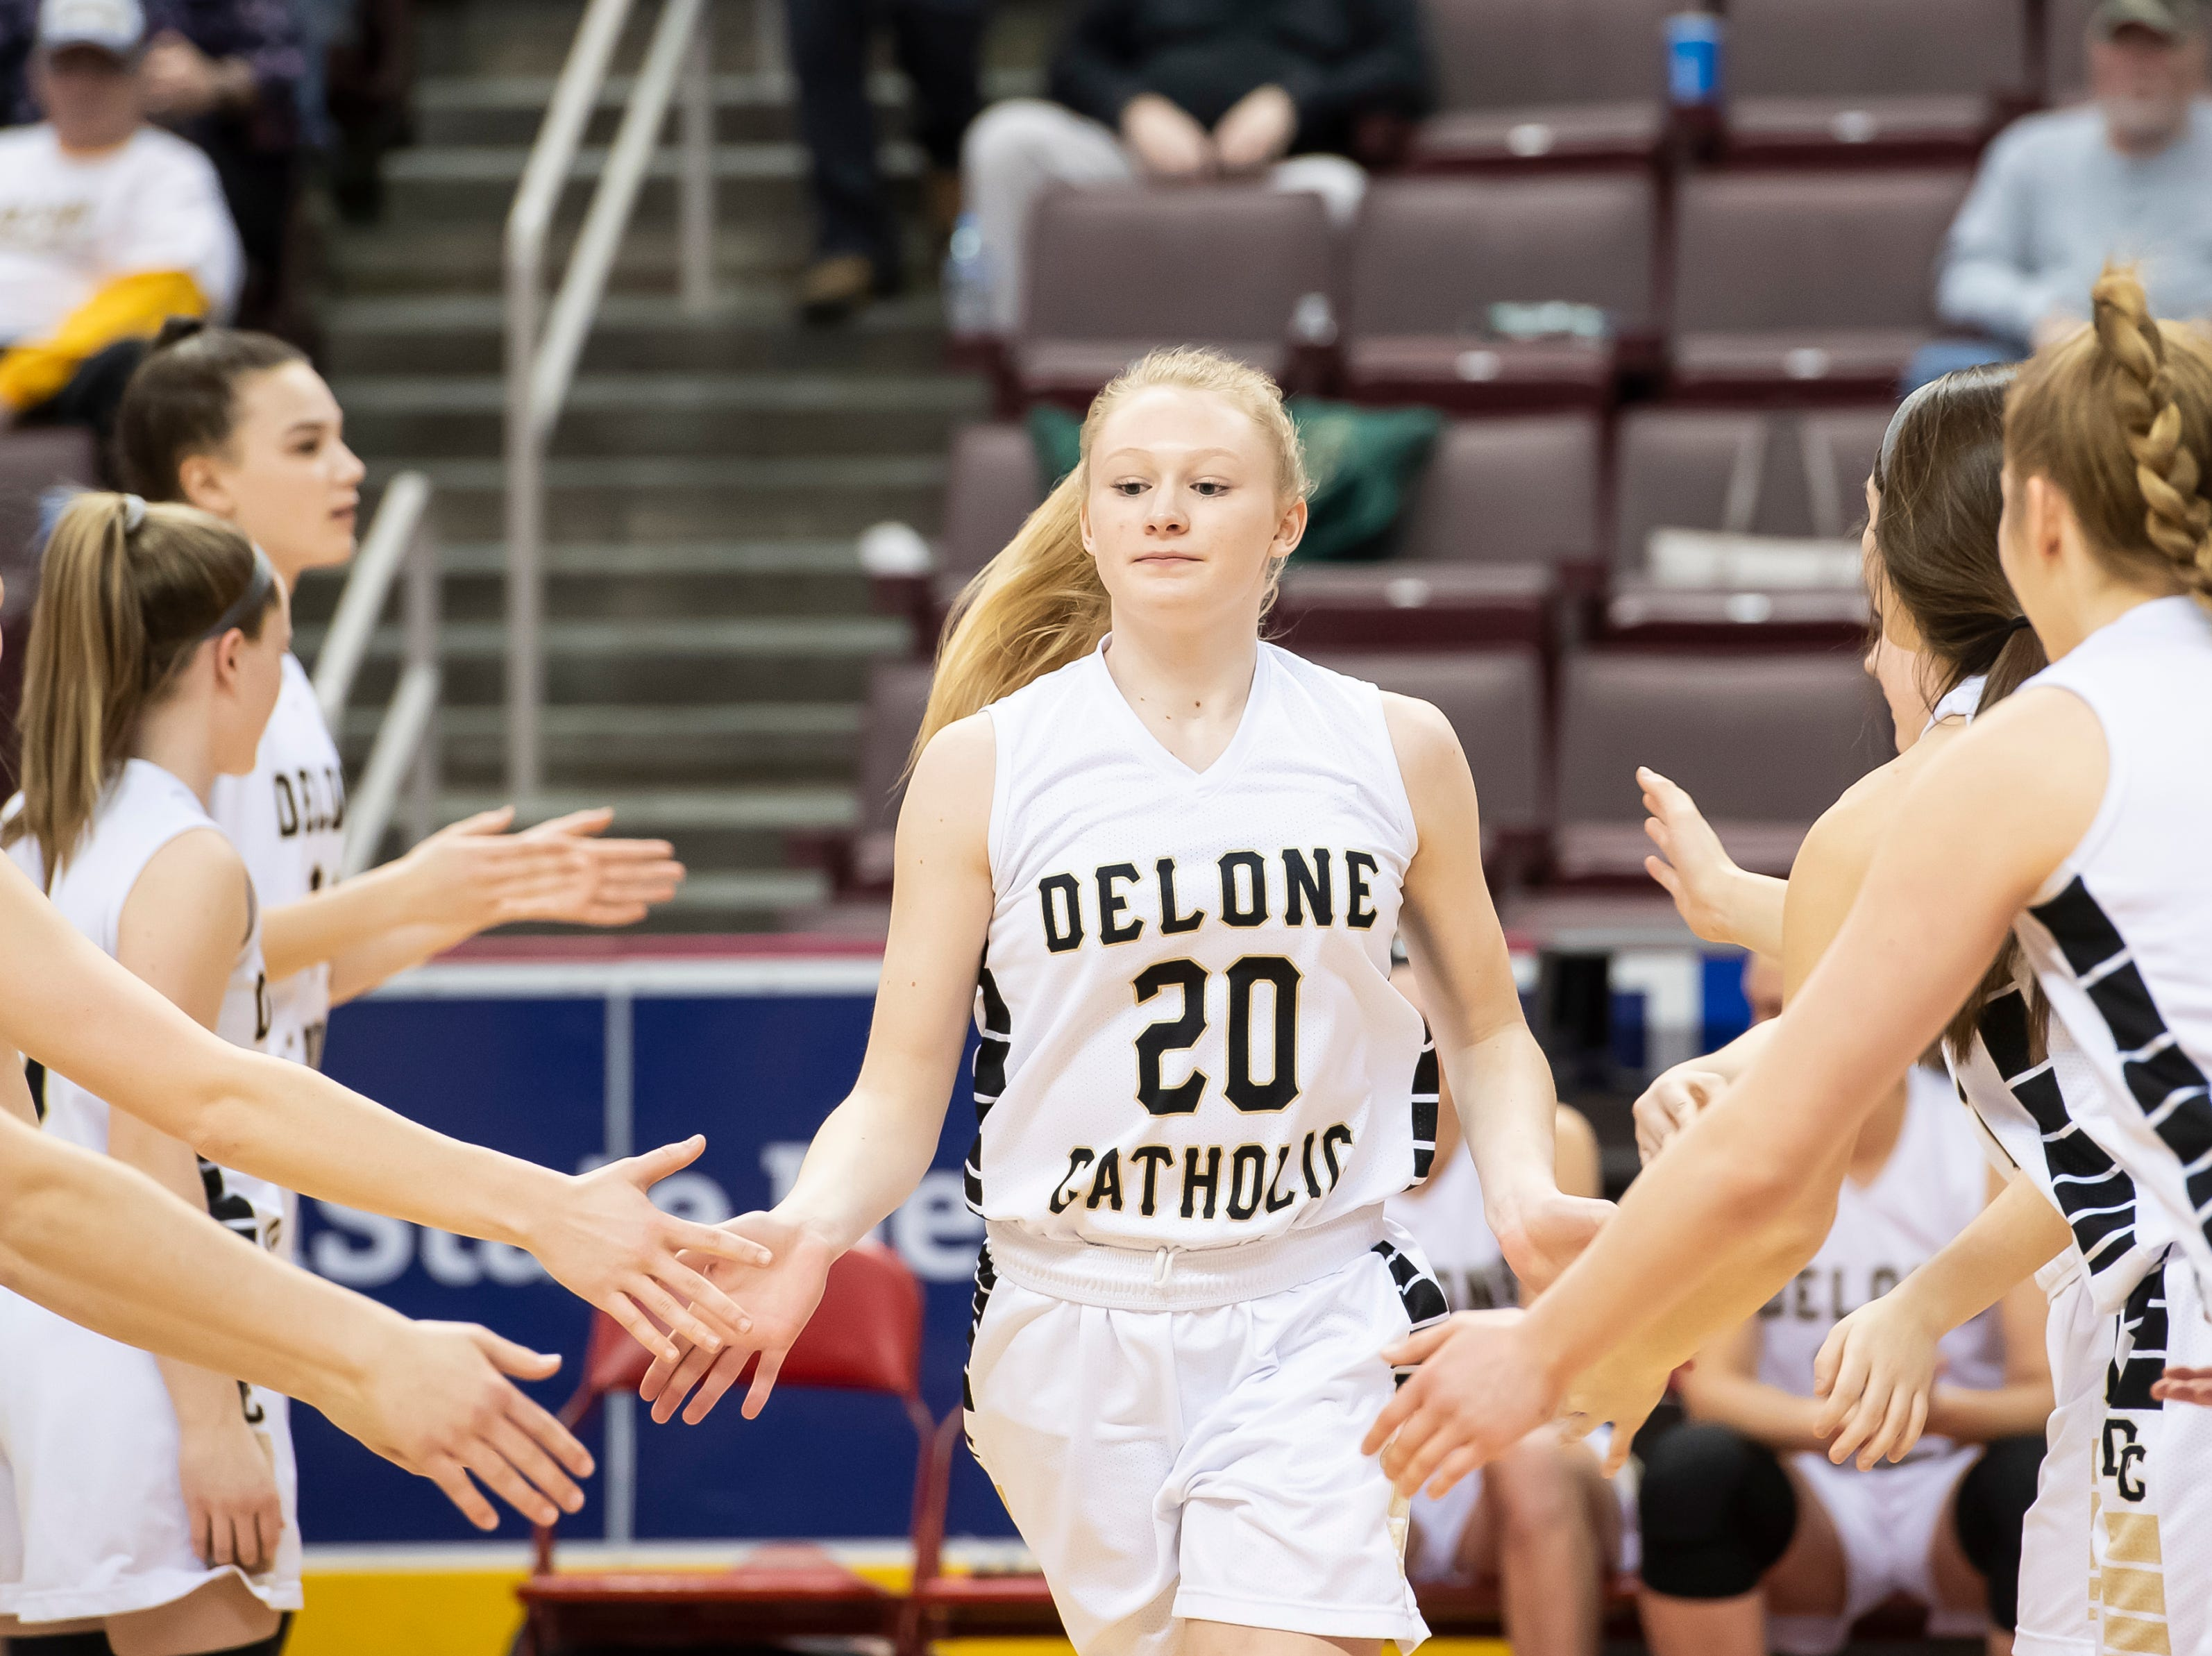 Delone Catholic's Brooke Lawyer is introduced during the starting lineups before the District 3 3A girls championship game against Trinity at the Giant Center in Hershey Wednesday, Feb. 27, 2019. The Squirettes fell 44-33.